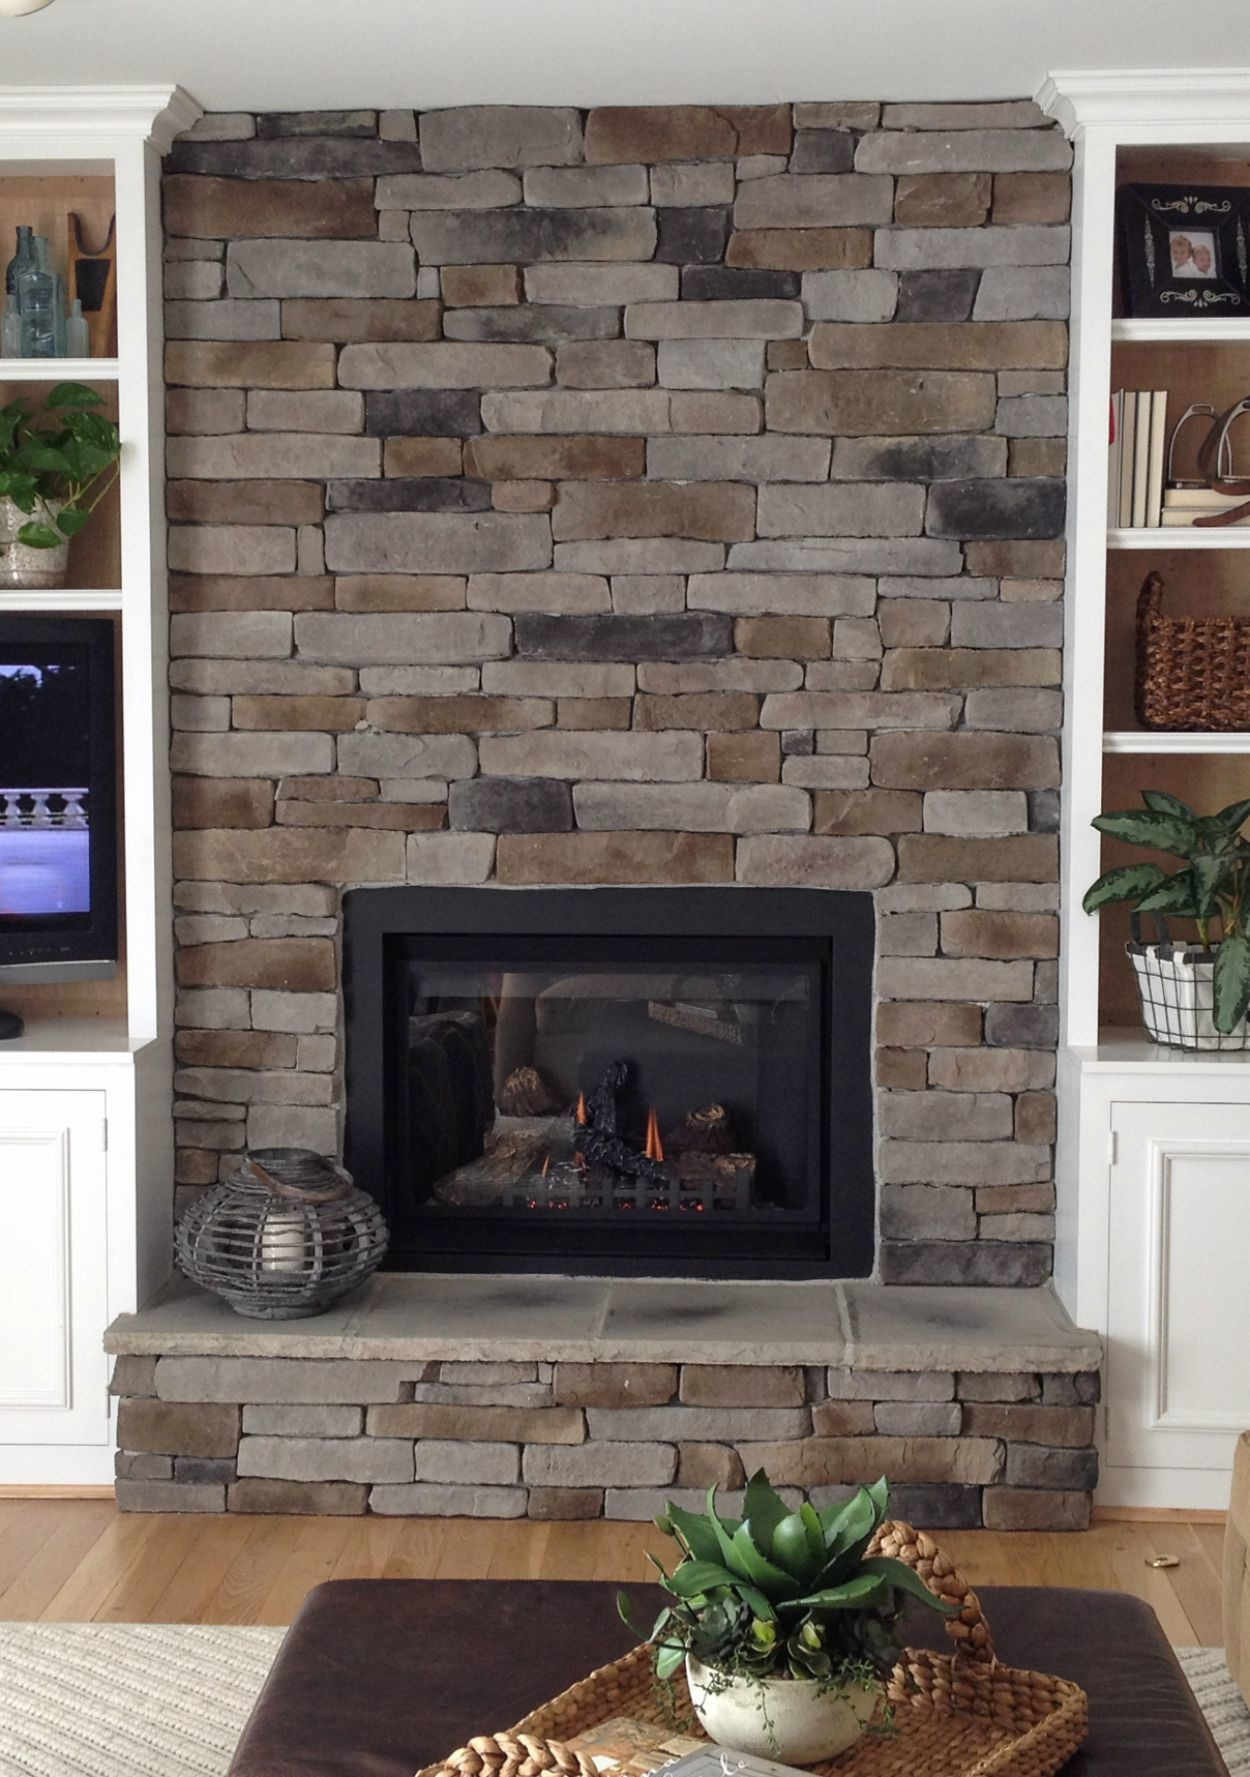 Installing Cultured Stone Fireplace How To Create The Stacked Stone Fireplace Look On A Budget